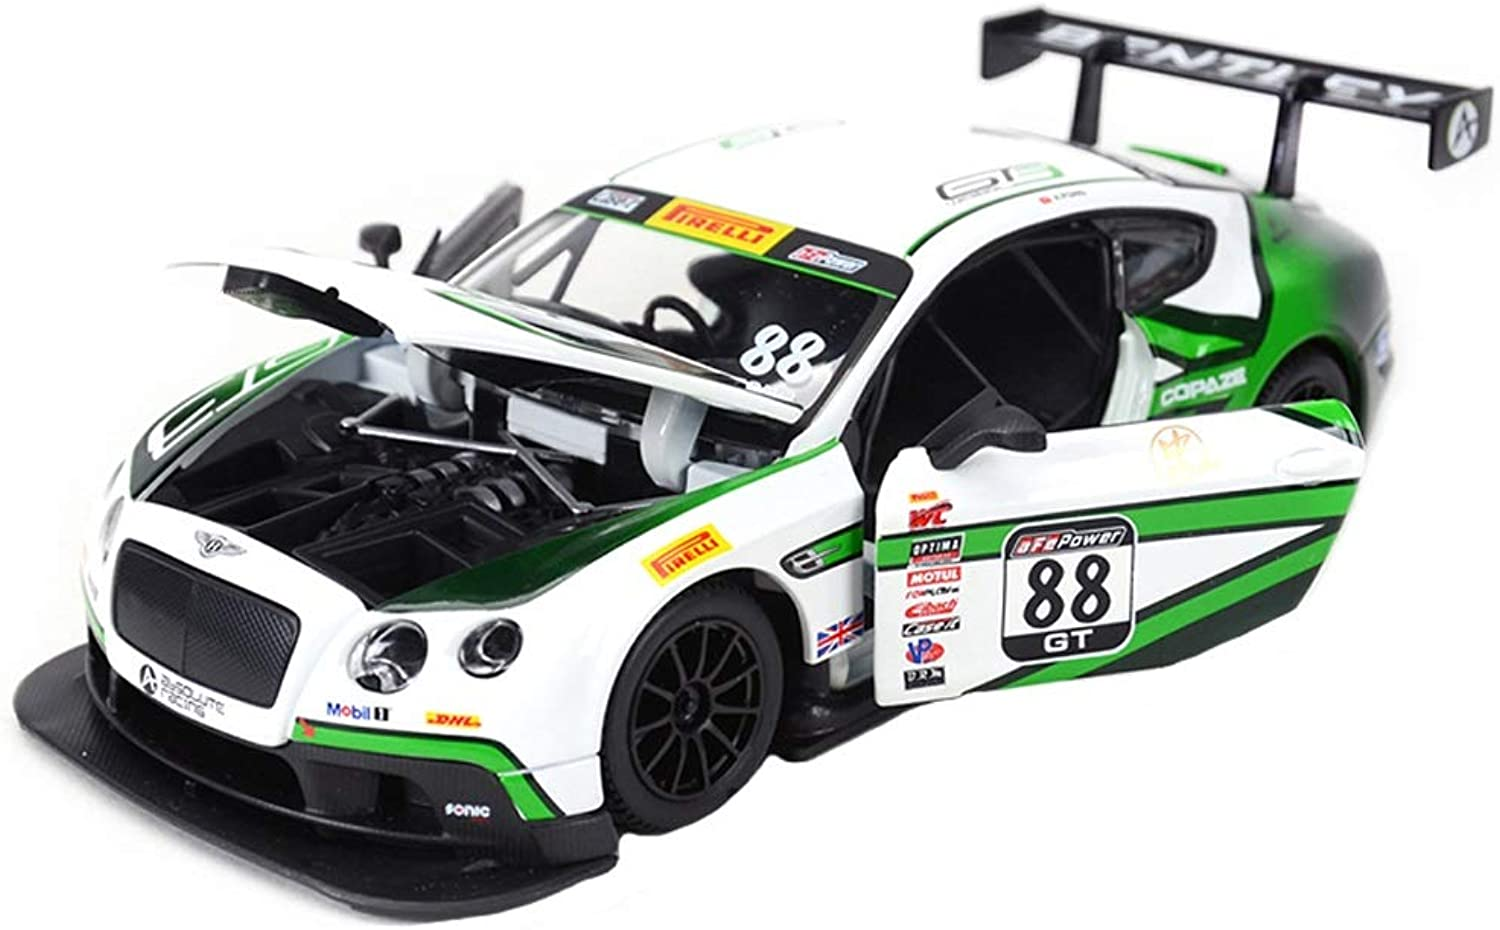 GAOQUN-TOY 1 24 Bentley Continental GT3 Motorsport Supersportwagen Simulation Legierung Automodell Geschenkbox Dekoration (Farbe   Weiß 88, größe   20CM8.2CM5.3CM) B07MW3BY4V  Ausgewählte Materialien     | Smart